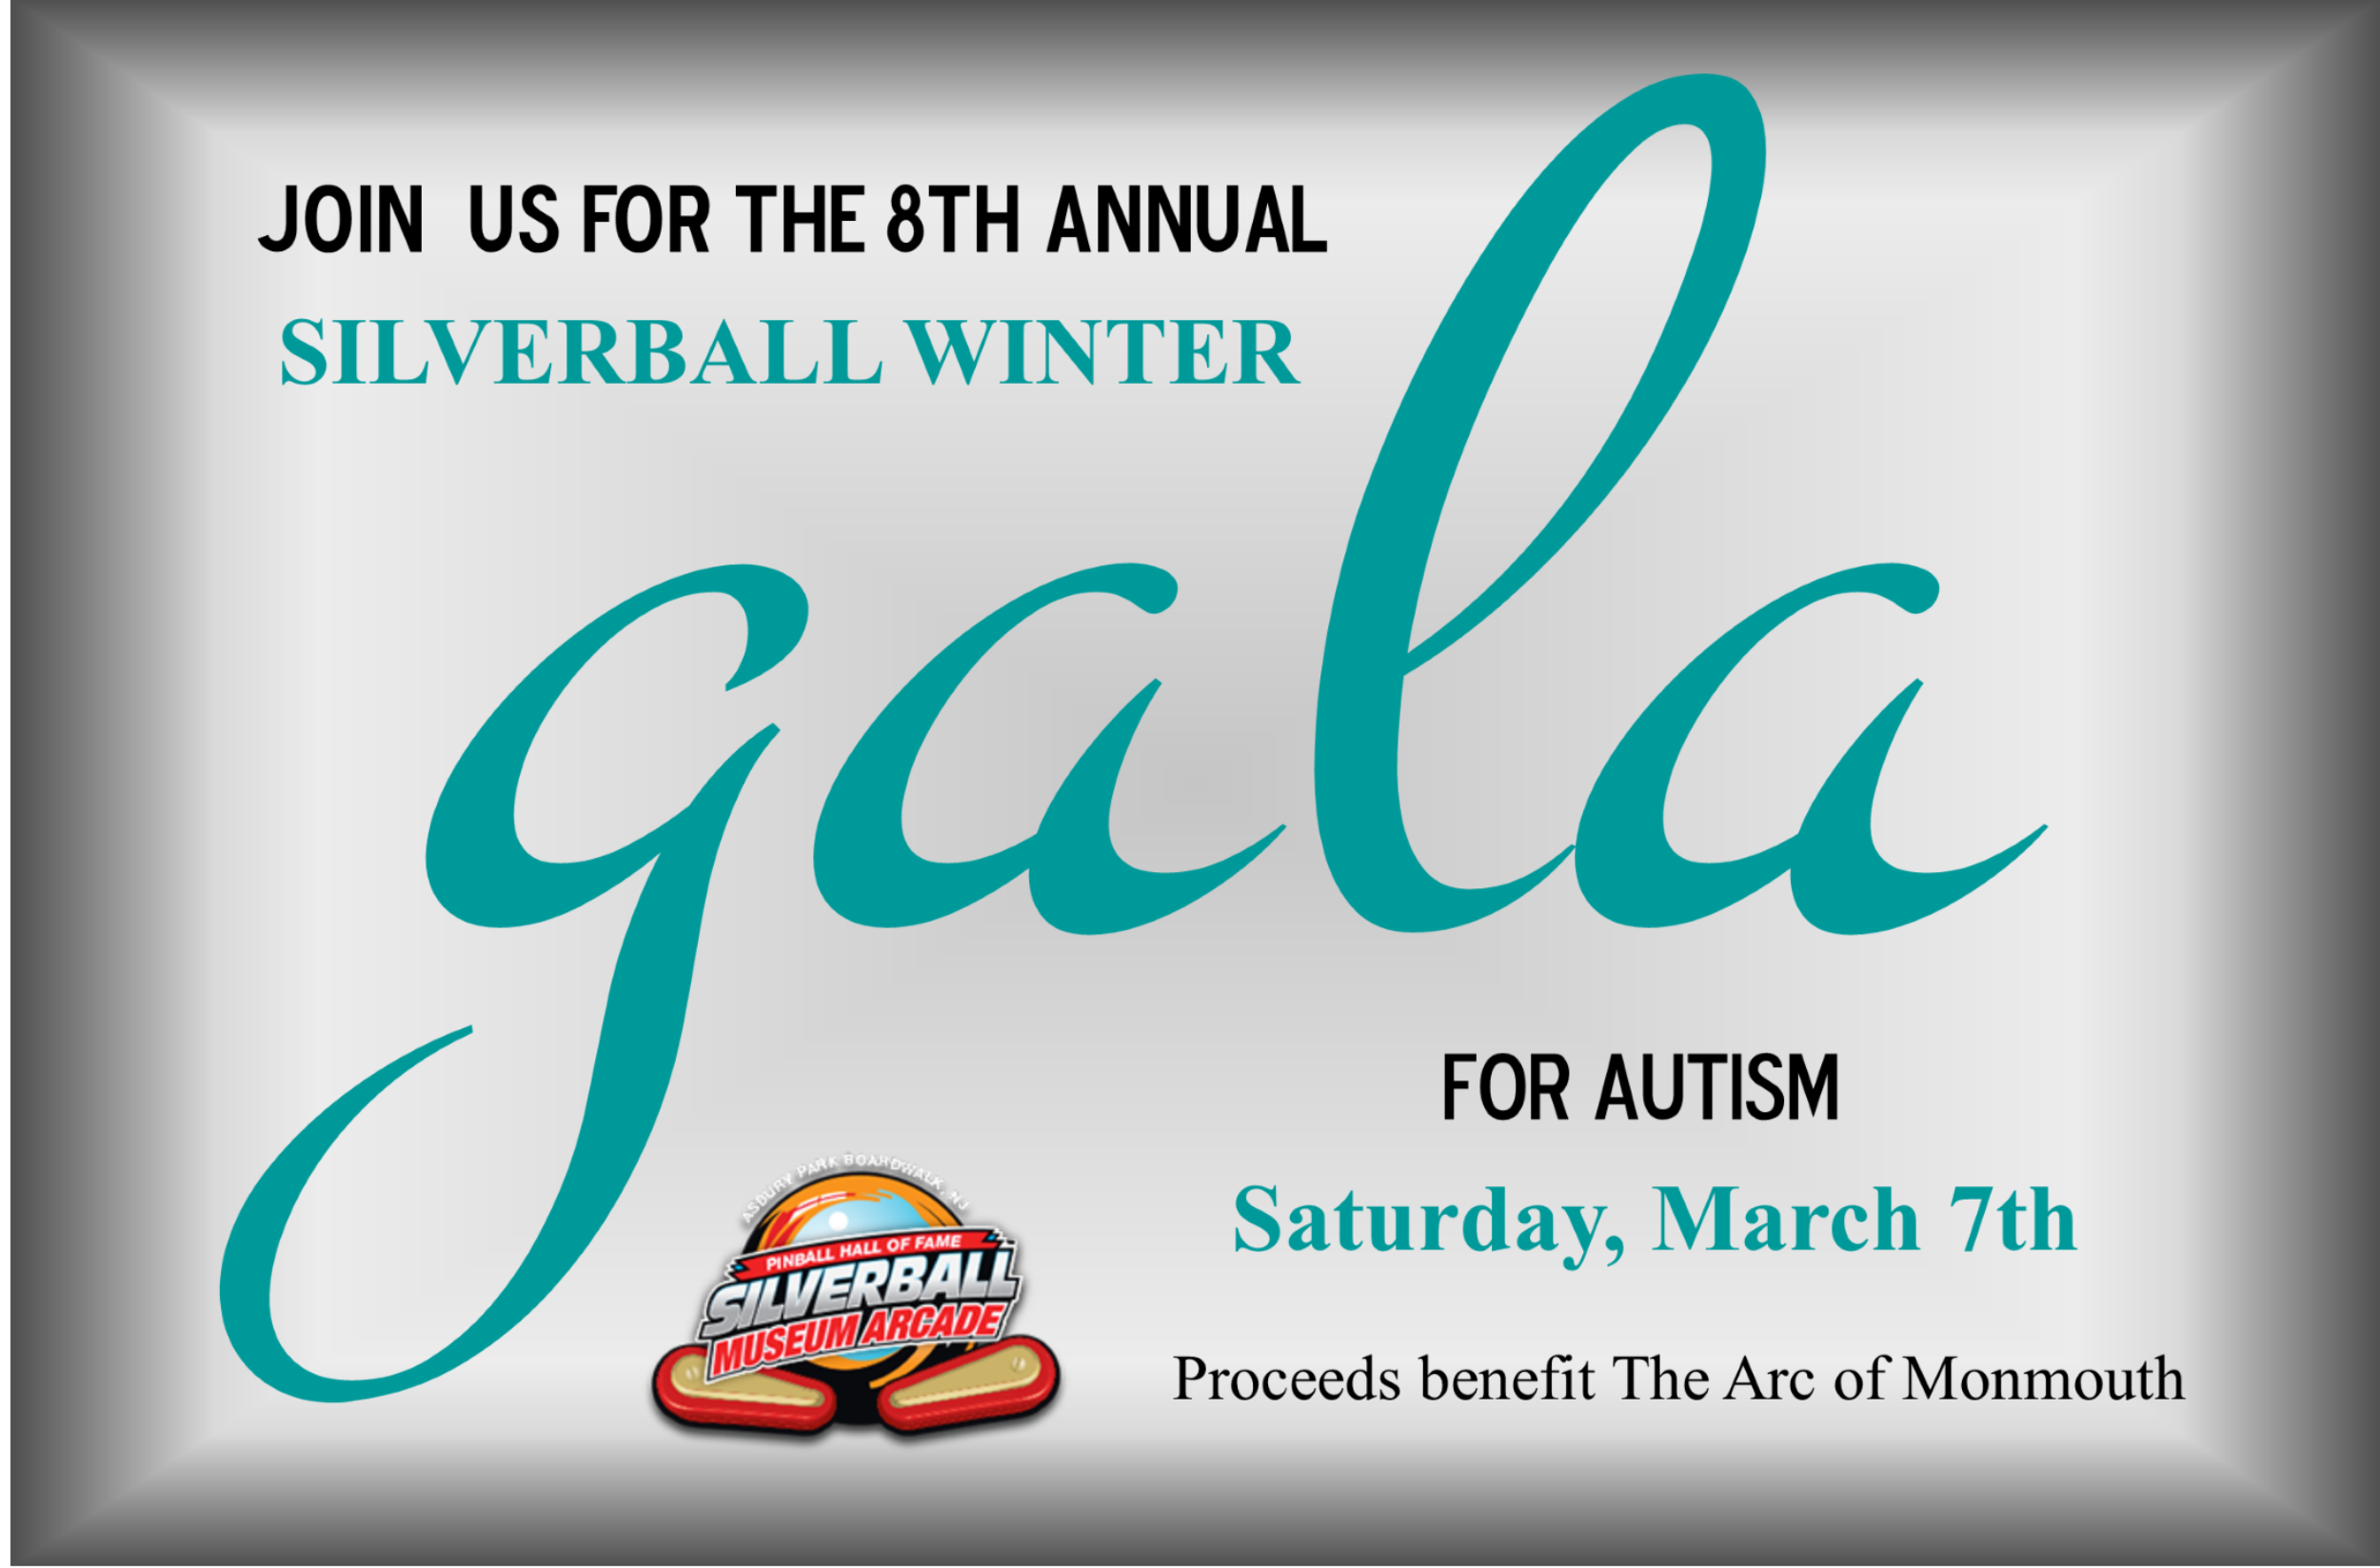 Silverball Gala is March 7th